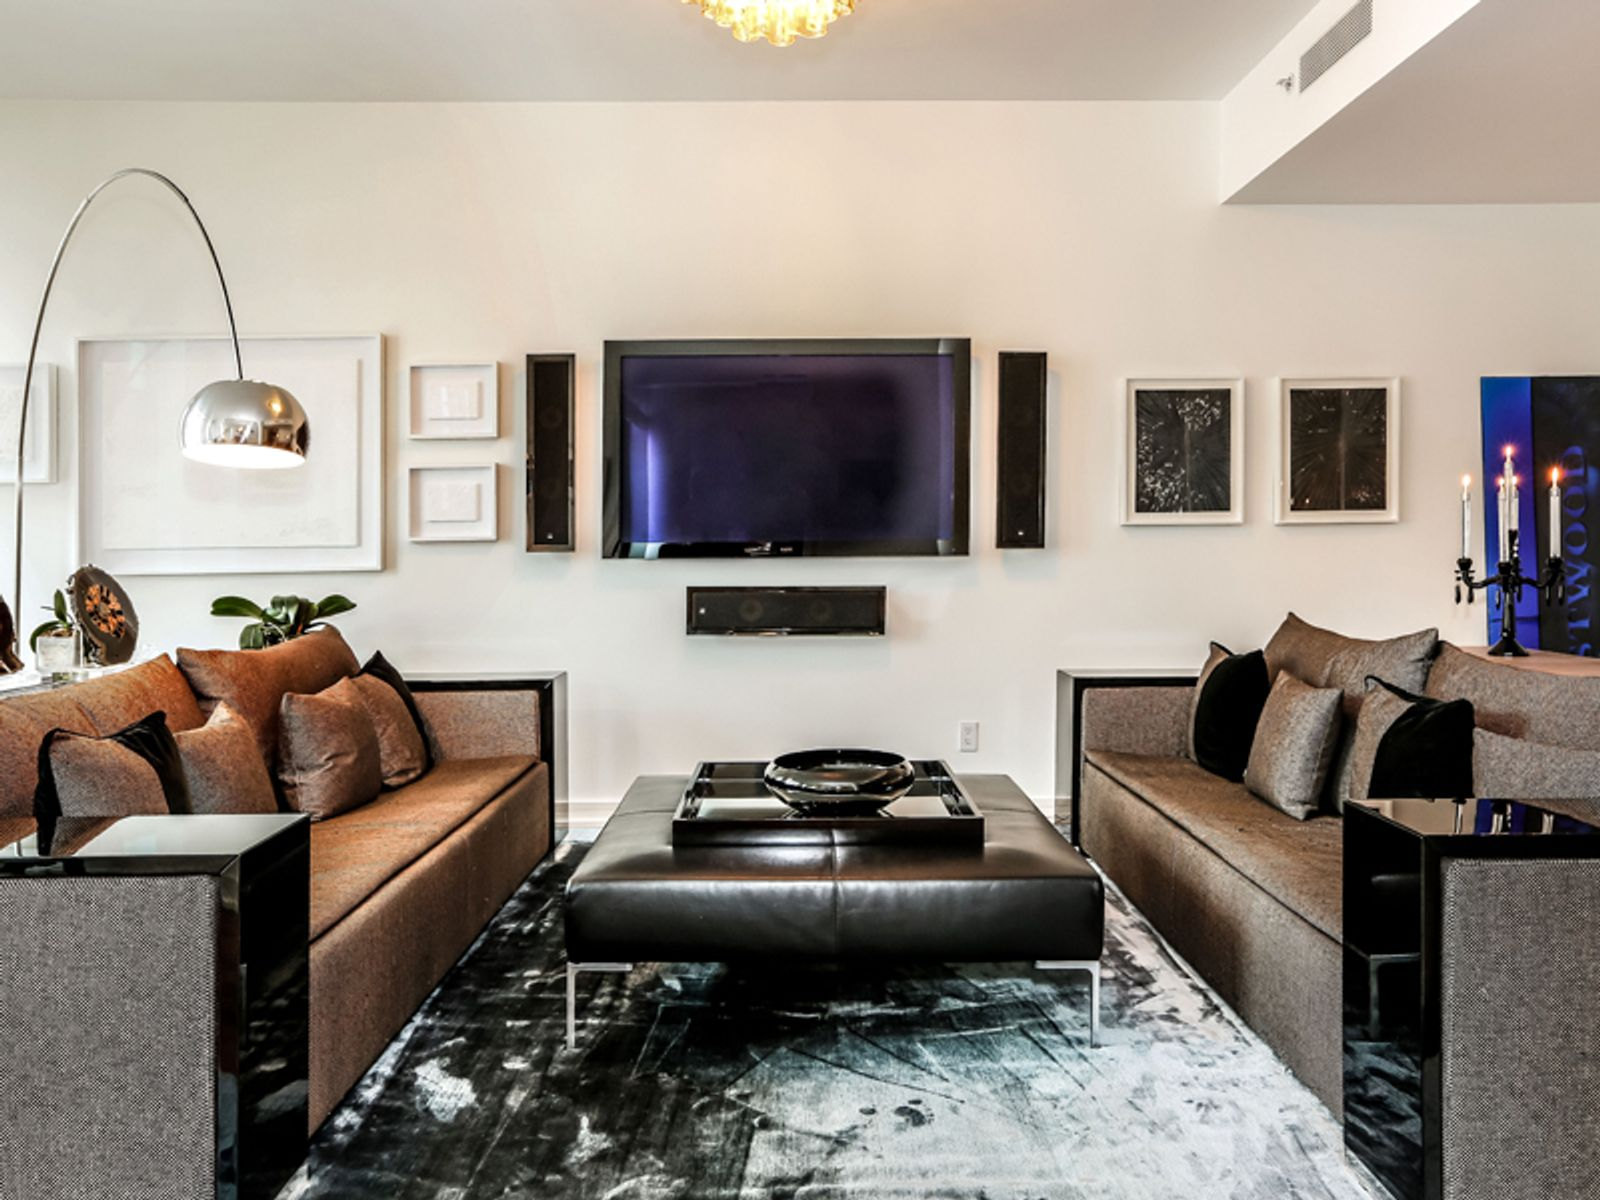 Exceptional Value at Warren Street, New York NY Condominium - New York City Real Estate